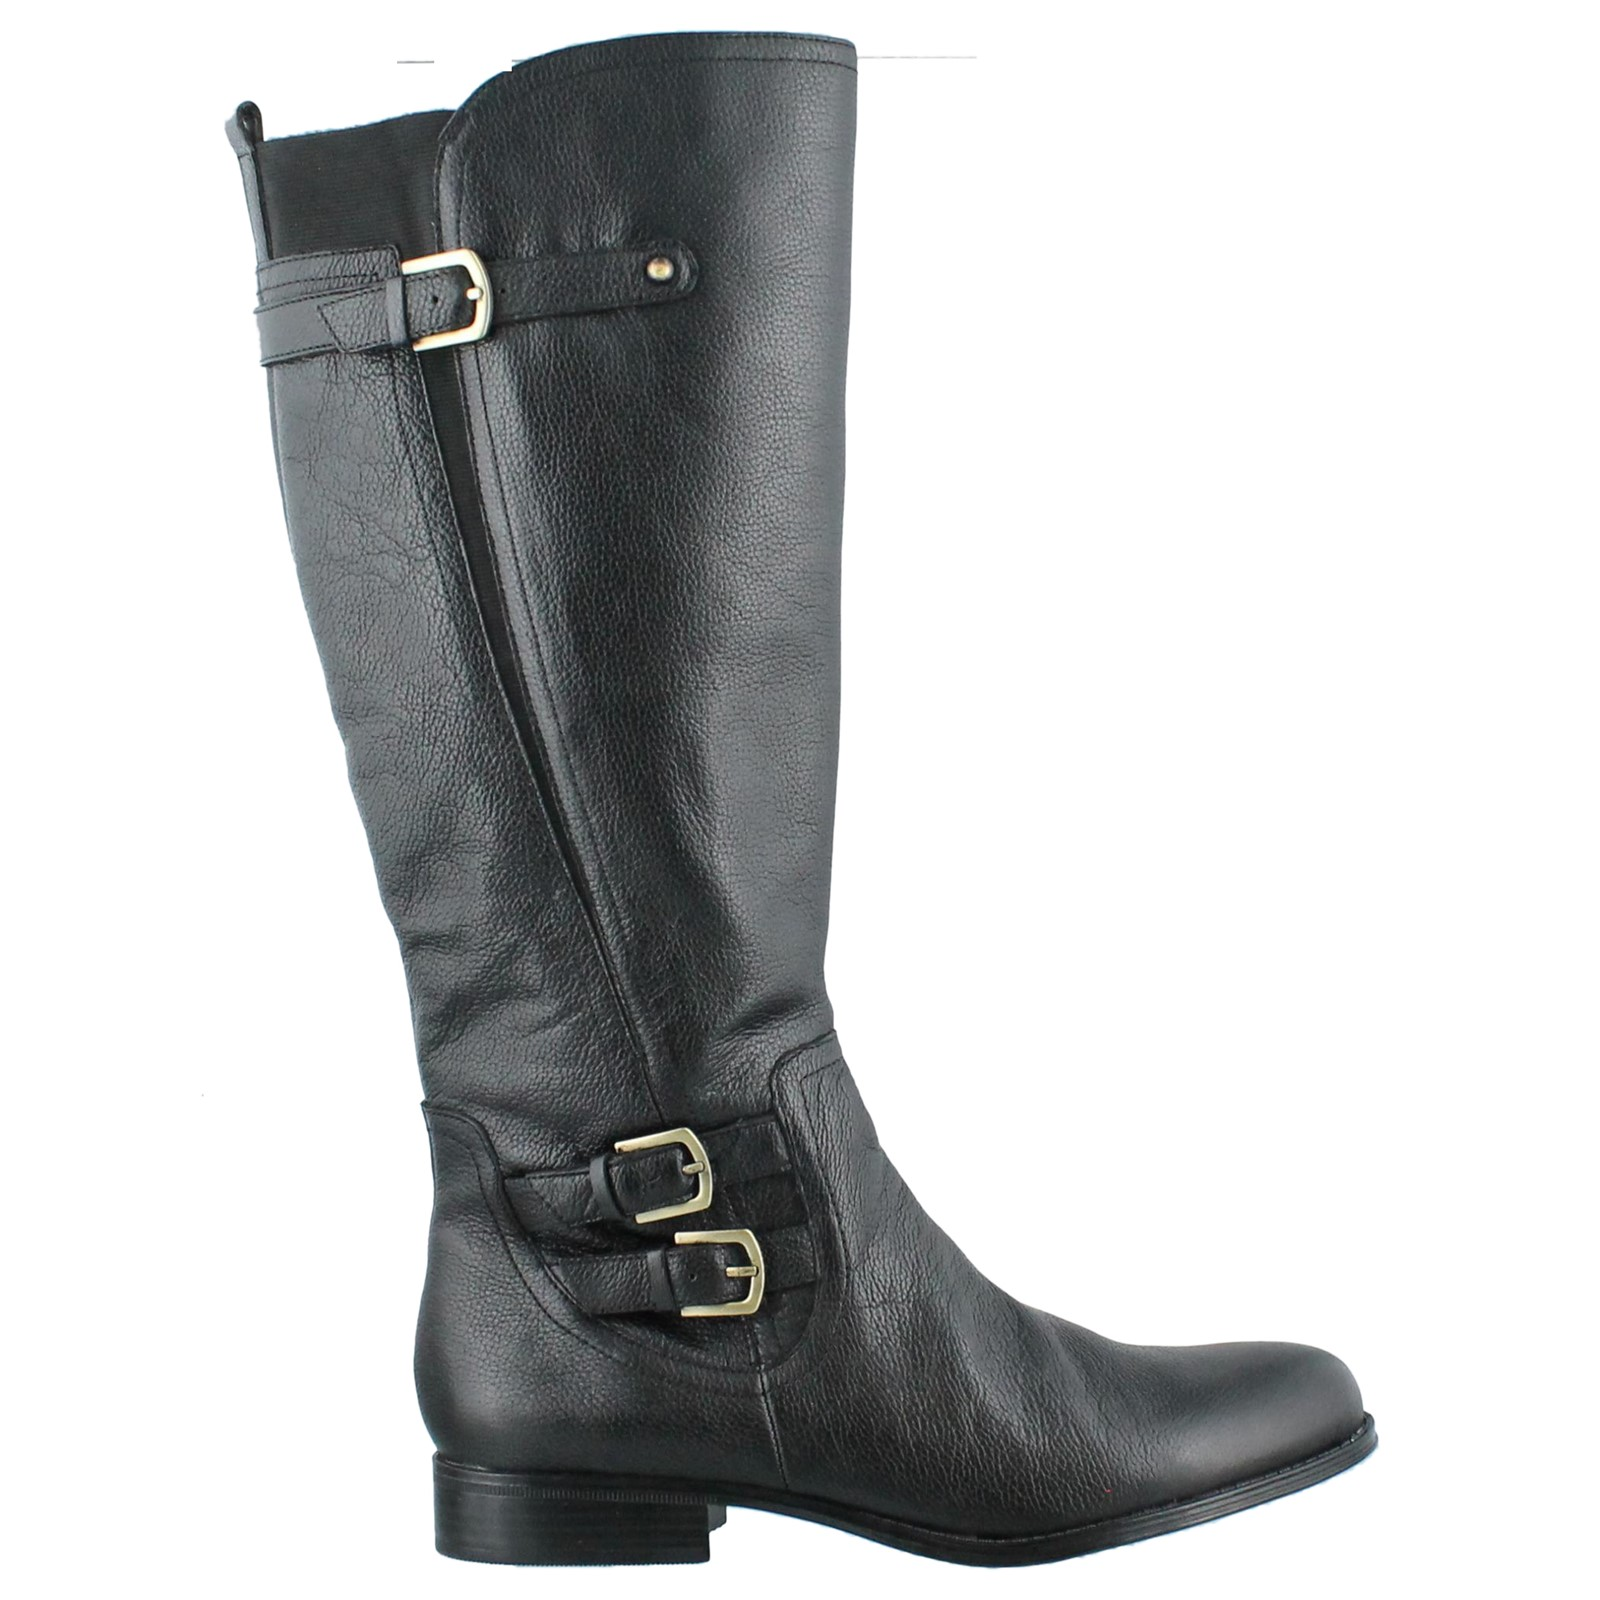 Women's Naturalizer, Johanna Knee High Boots